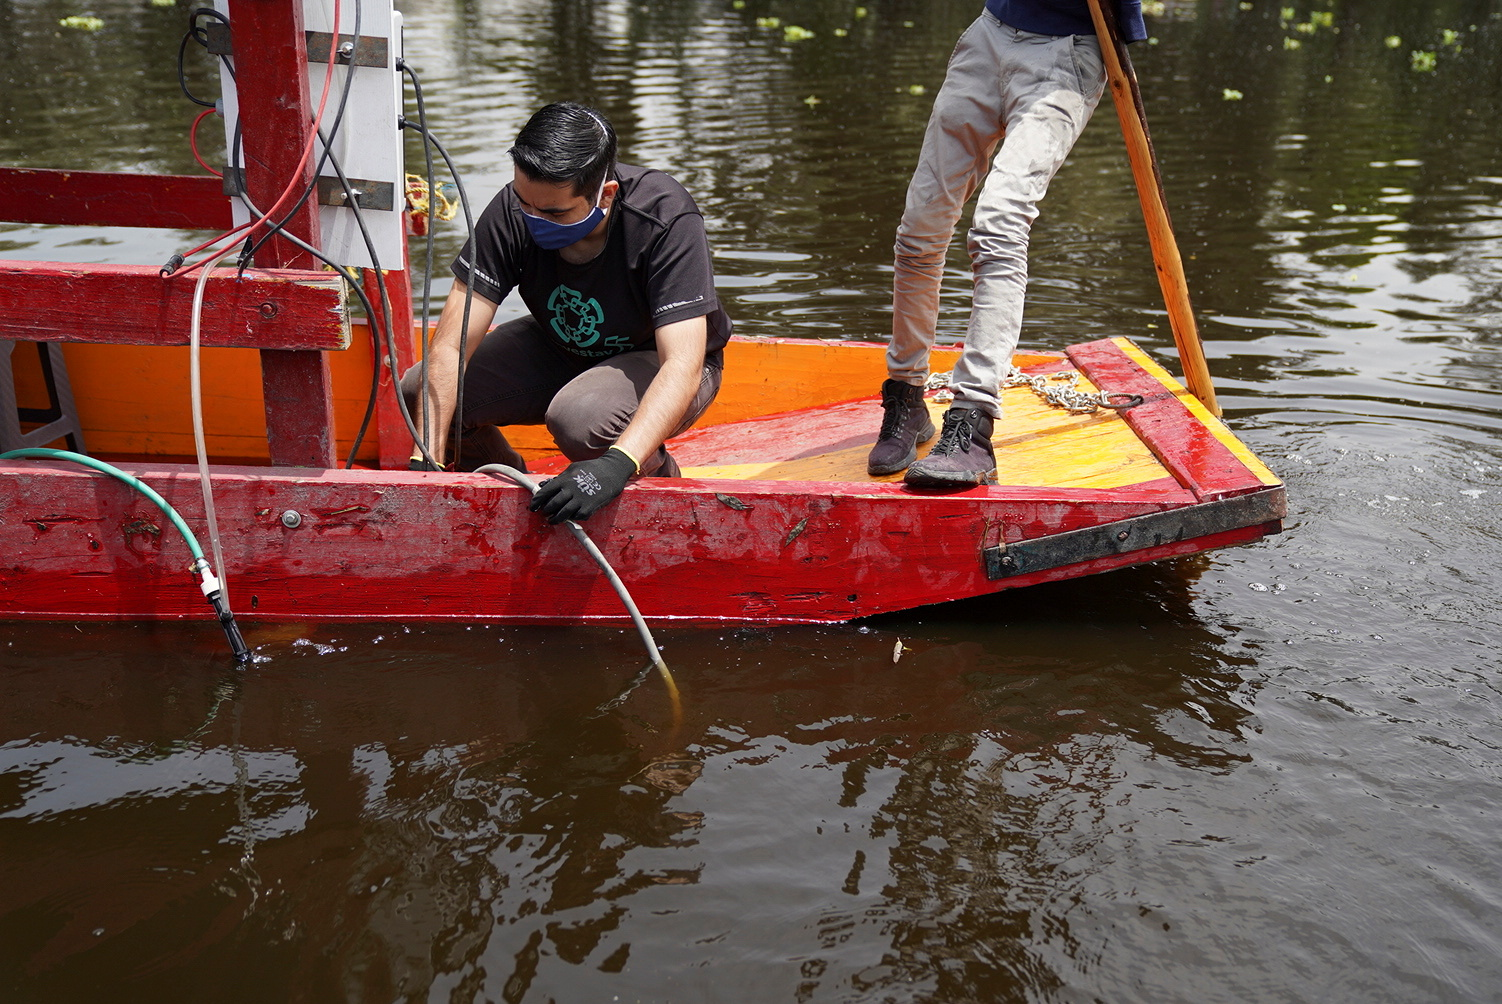 """A member of a team of researchers from the Center for Research and Advanced Studies (Cinvestav), who developed a method that converts solar energy into photovoltaic energy that activates a pump that sends """"nanobubbles"""" into the water, tests a water system at a trajinera boat as part of a project to clean the polluted waters at the canals of Xochimilco, in Mexico City, Mexico August 20, 2021. REUTERS/Toya Sarno Jordan"""